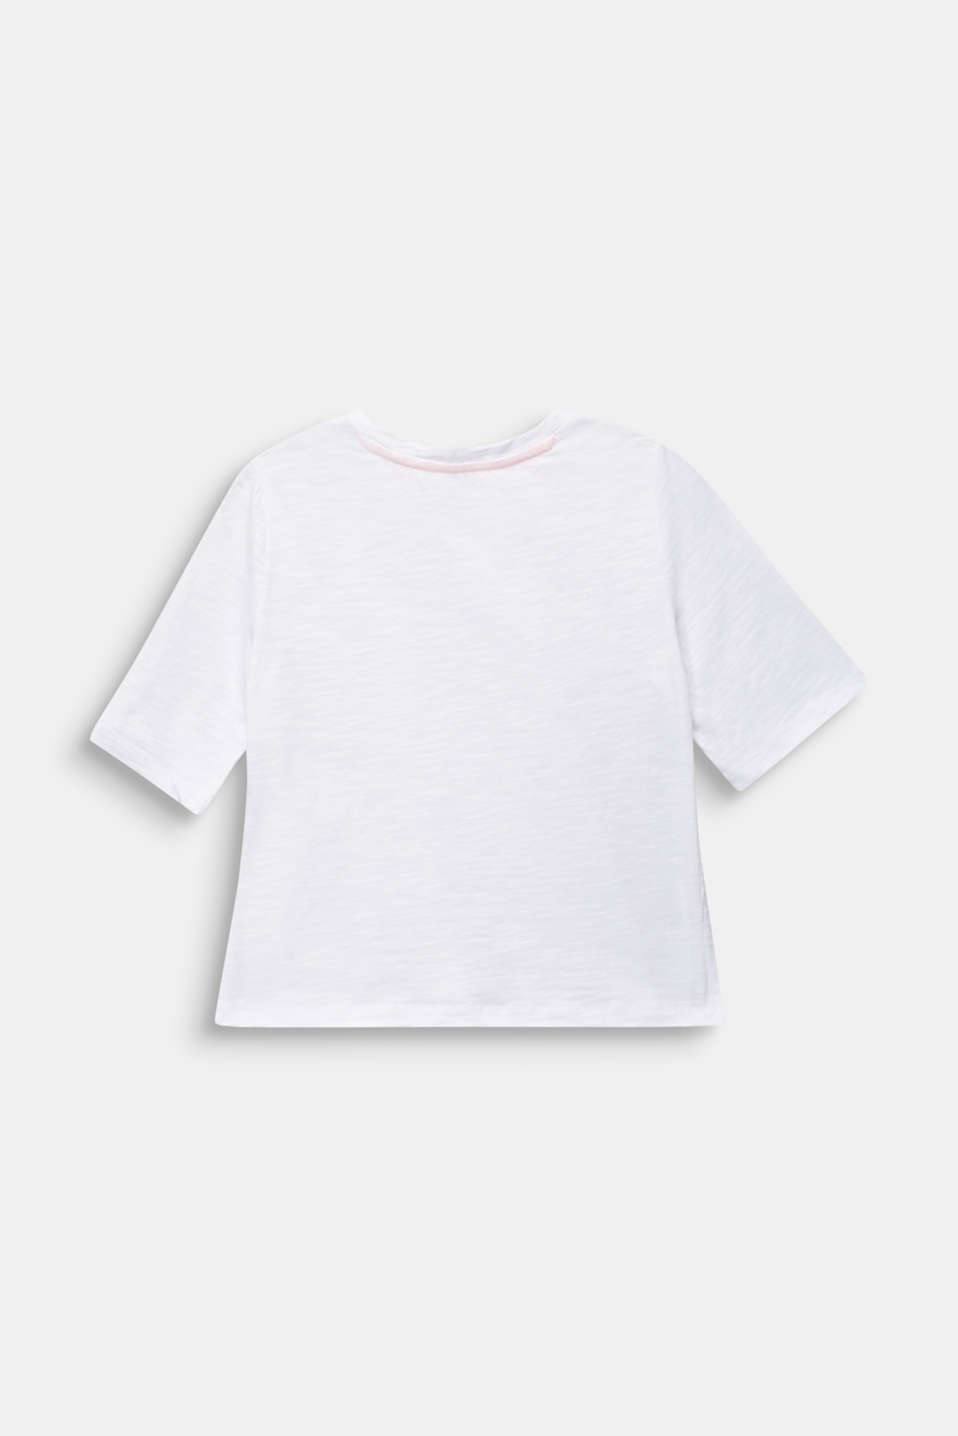 T-shirt with side slits, 100% cotton, LCWHITE, detail image number 1